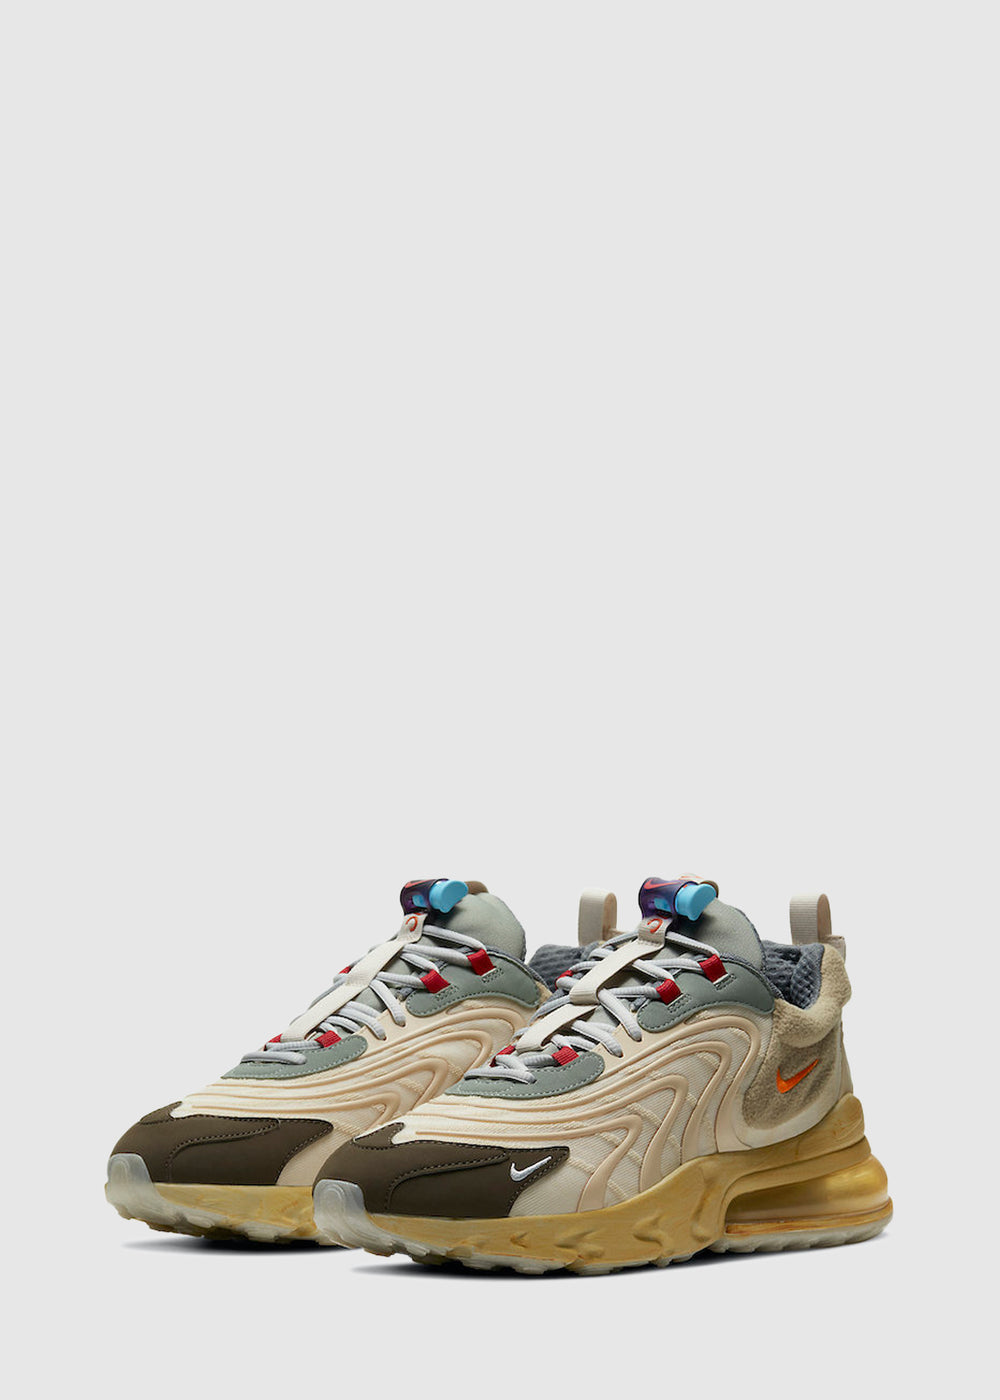 nike-x-travis-scott-air-max-270-cactus-trails-cream-2